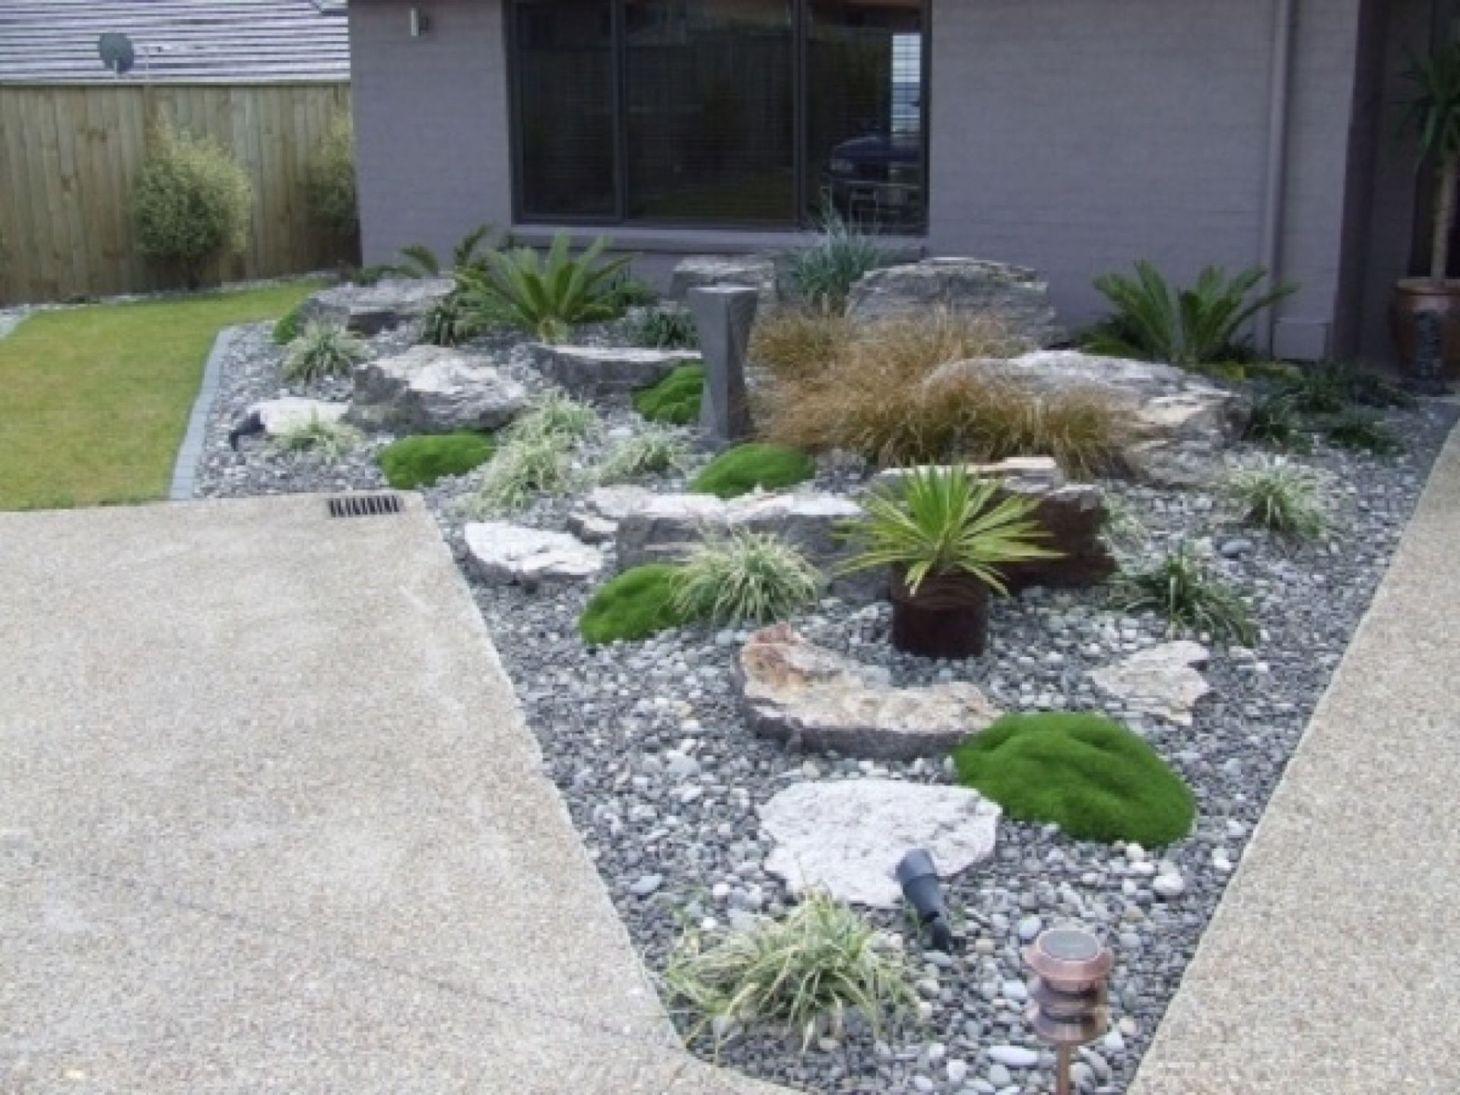 20 Beautiful Rock Garden Design For Your Home Landscaping Ideas Goodsgn Landscaping With Rocks Rock Garden Landscaping Rock Garden Design